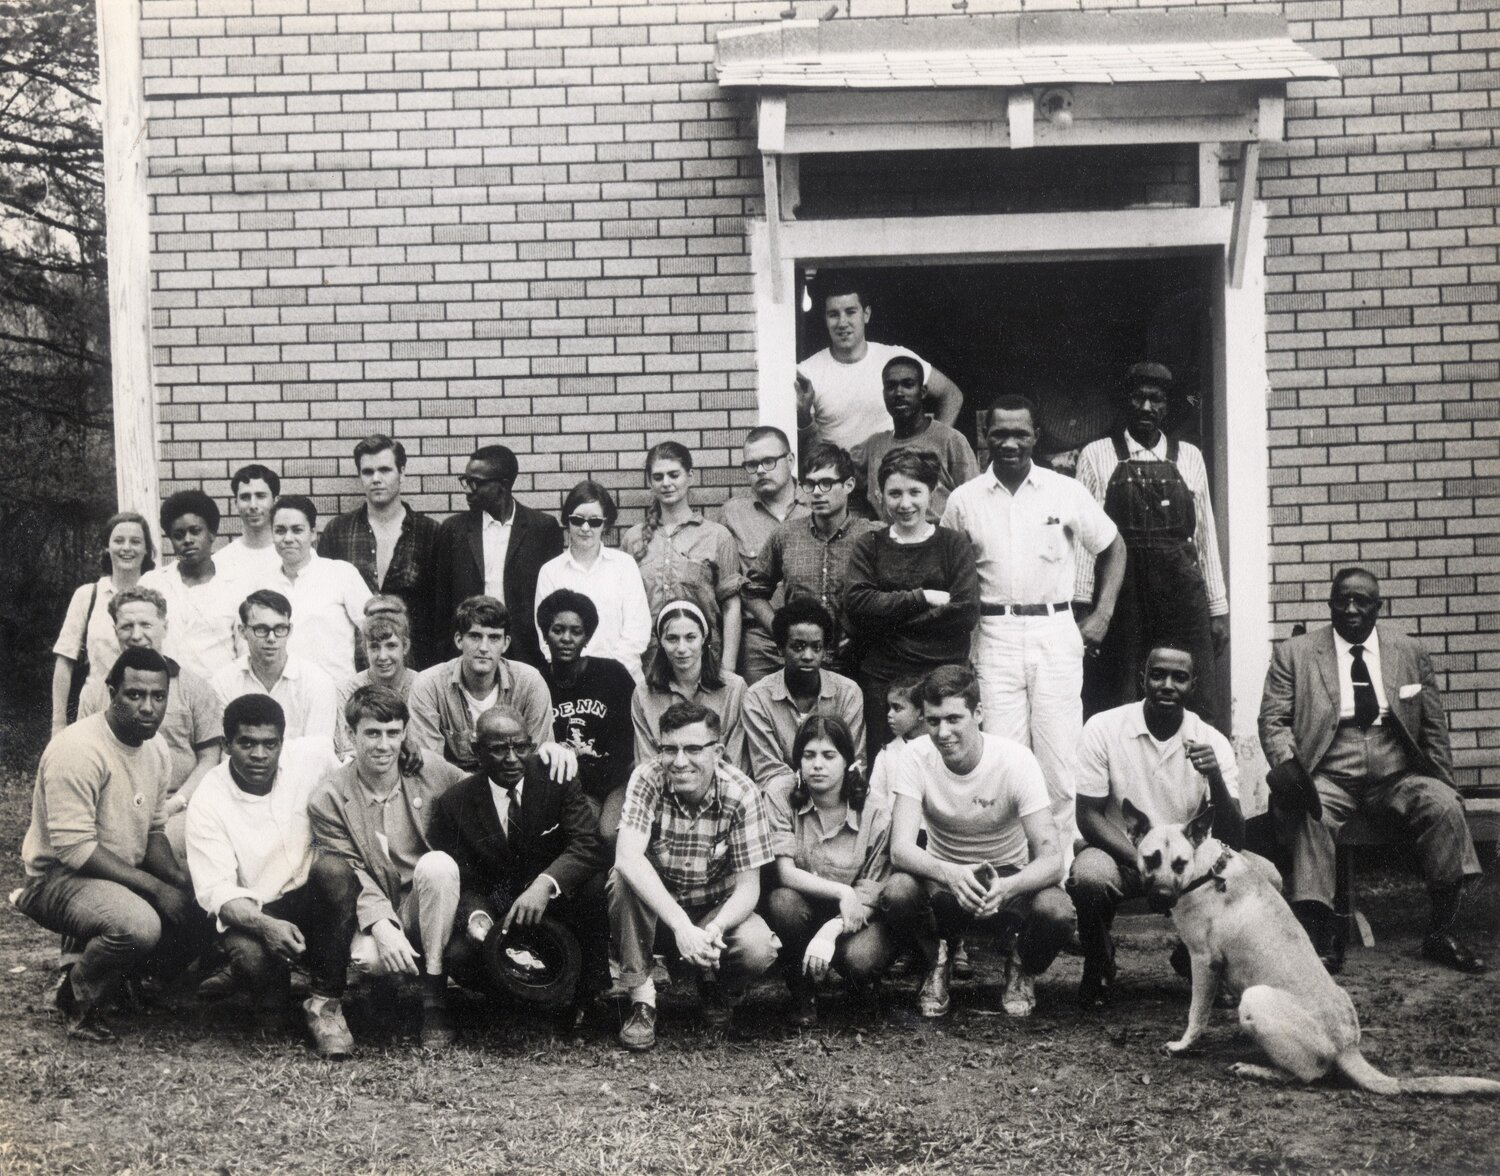 CORE volunteers, workers and local activists gather to rebuild Pleasant Grove Baptist Church in Jonesboro, La., one of the two black churches destroyed by arsonists in January 1965. The Deacons protected college student volunteers who aided the rebuild project. Shown are, front row, left to right, Alvin Culpepper; unidentified volunteer; Charlie Fenton, CORE; the Rev. E. H. Houston, church pastor); and Duffy, Fenton's dog. Second row, fifth from left, Cathy Patterson, CORE. Top row, fourth from left, Ronnie Moore, CORE. In the doorway, left to right, Mike Lesser, CORE, and Jonesboro residents Eddie Scott, Lee Gilbert and Freeman Knox.   Courtesy of the Ronnie Moore Papers, Amistad Research Center, New Orleans, La.